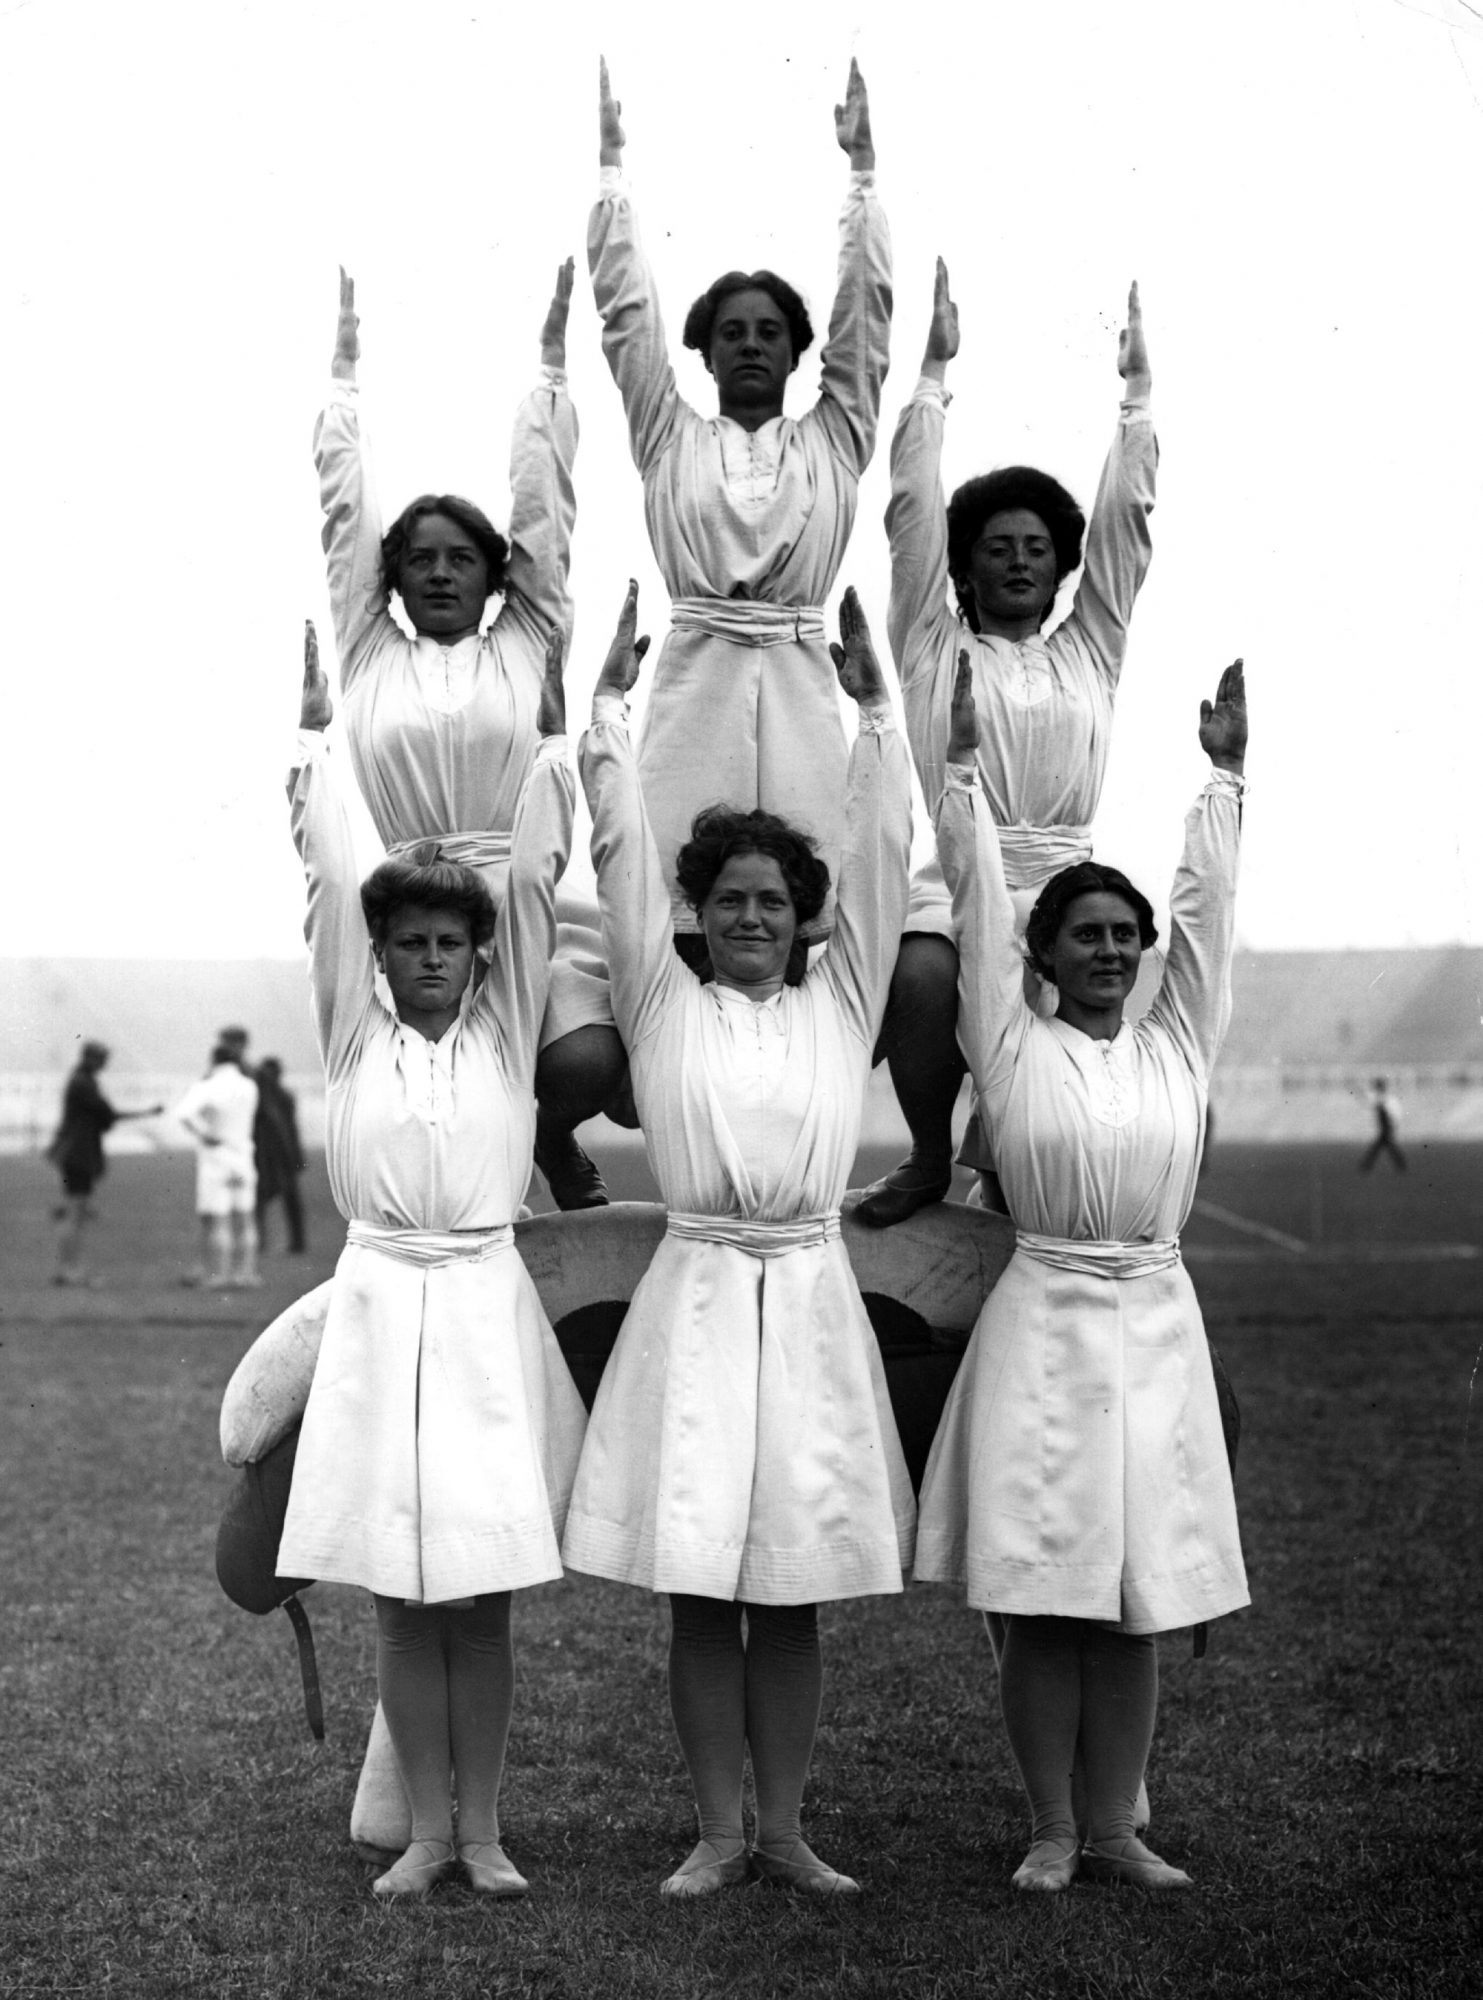 <p>1908 London Olympics, Danish Gymnasts</p>